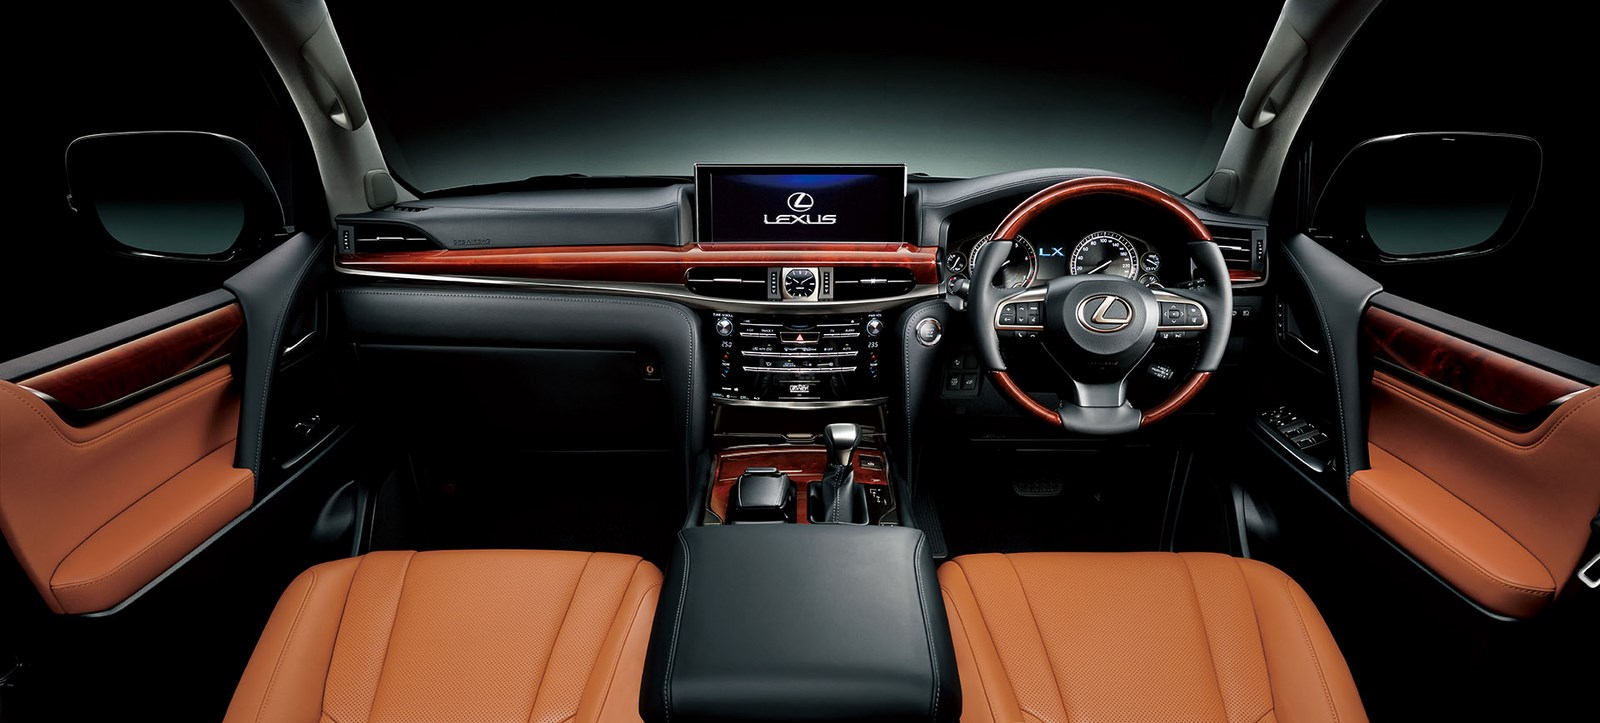 Captivating 2016 Lexus LX 570 Japan Spec Interior Sun